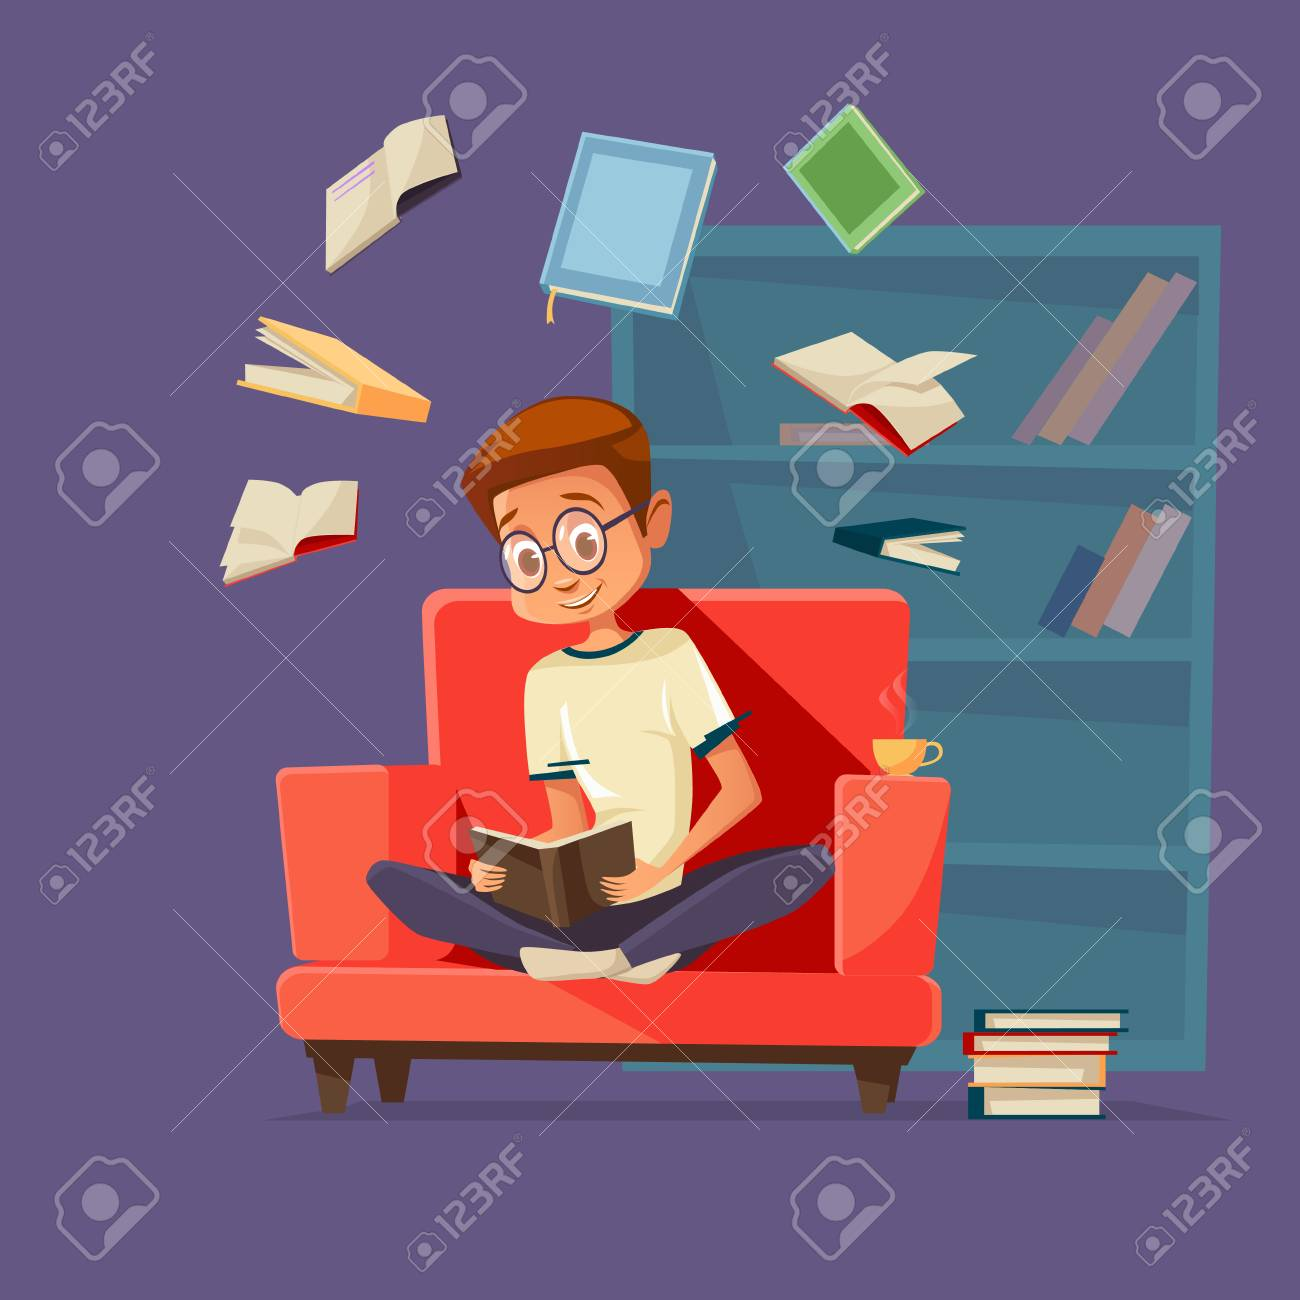 Vector cartoon young man reader, male student character sitting in glasses at armchair reading textbook with books flying around. - 98668547